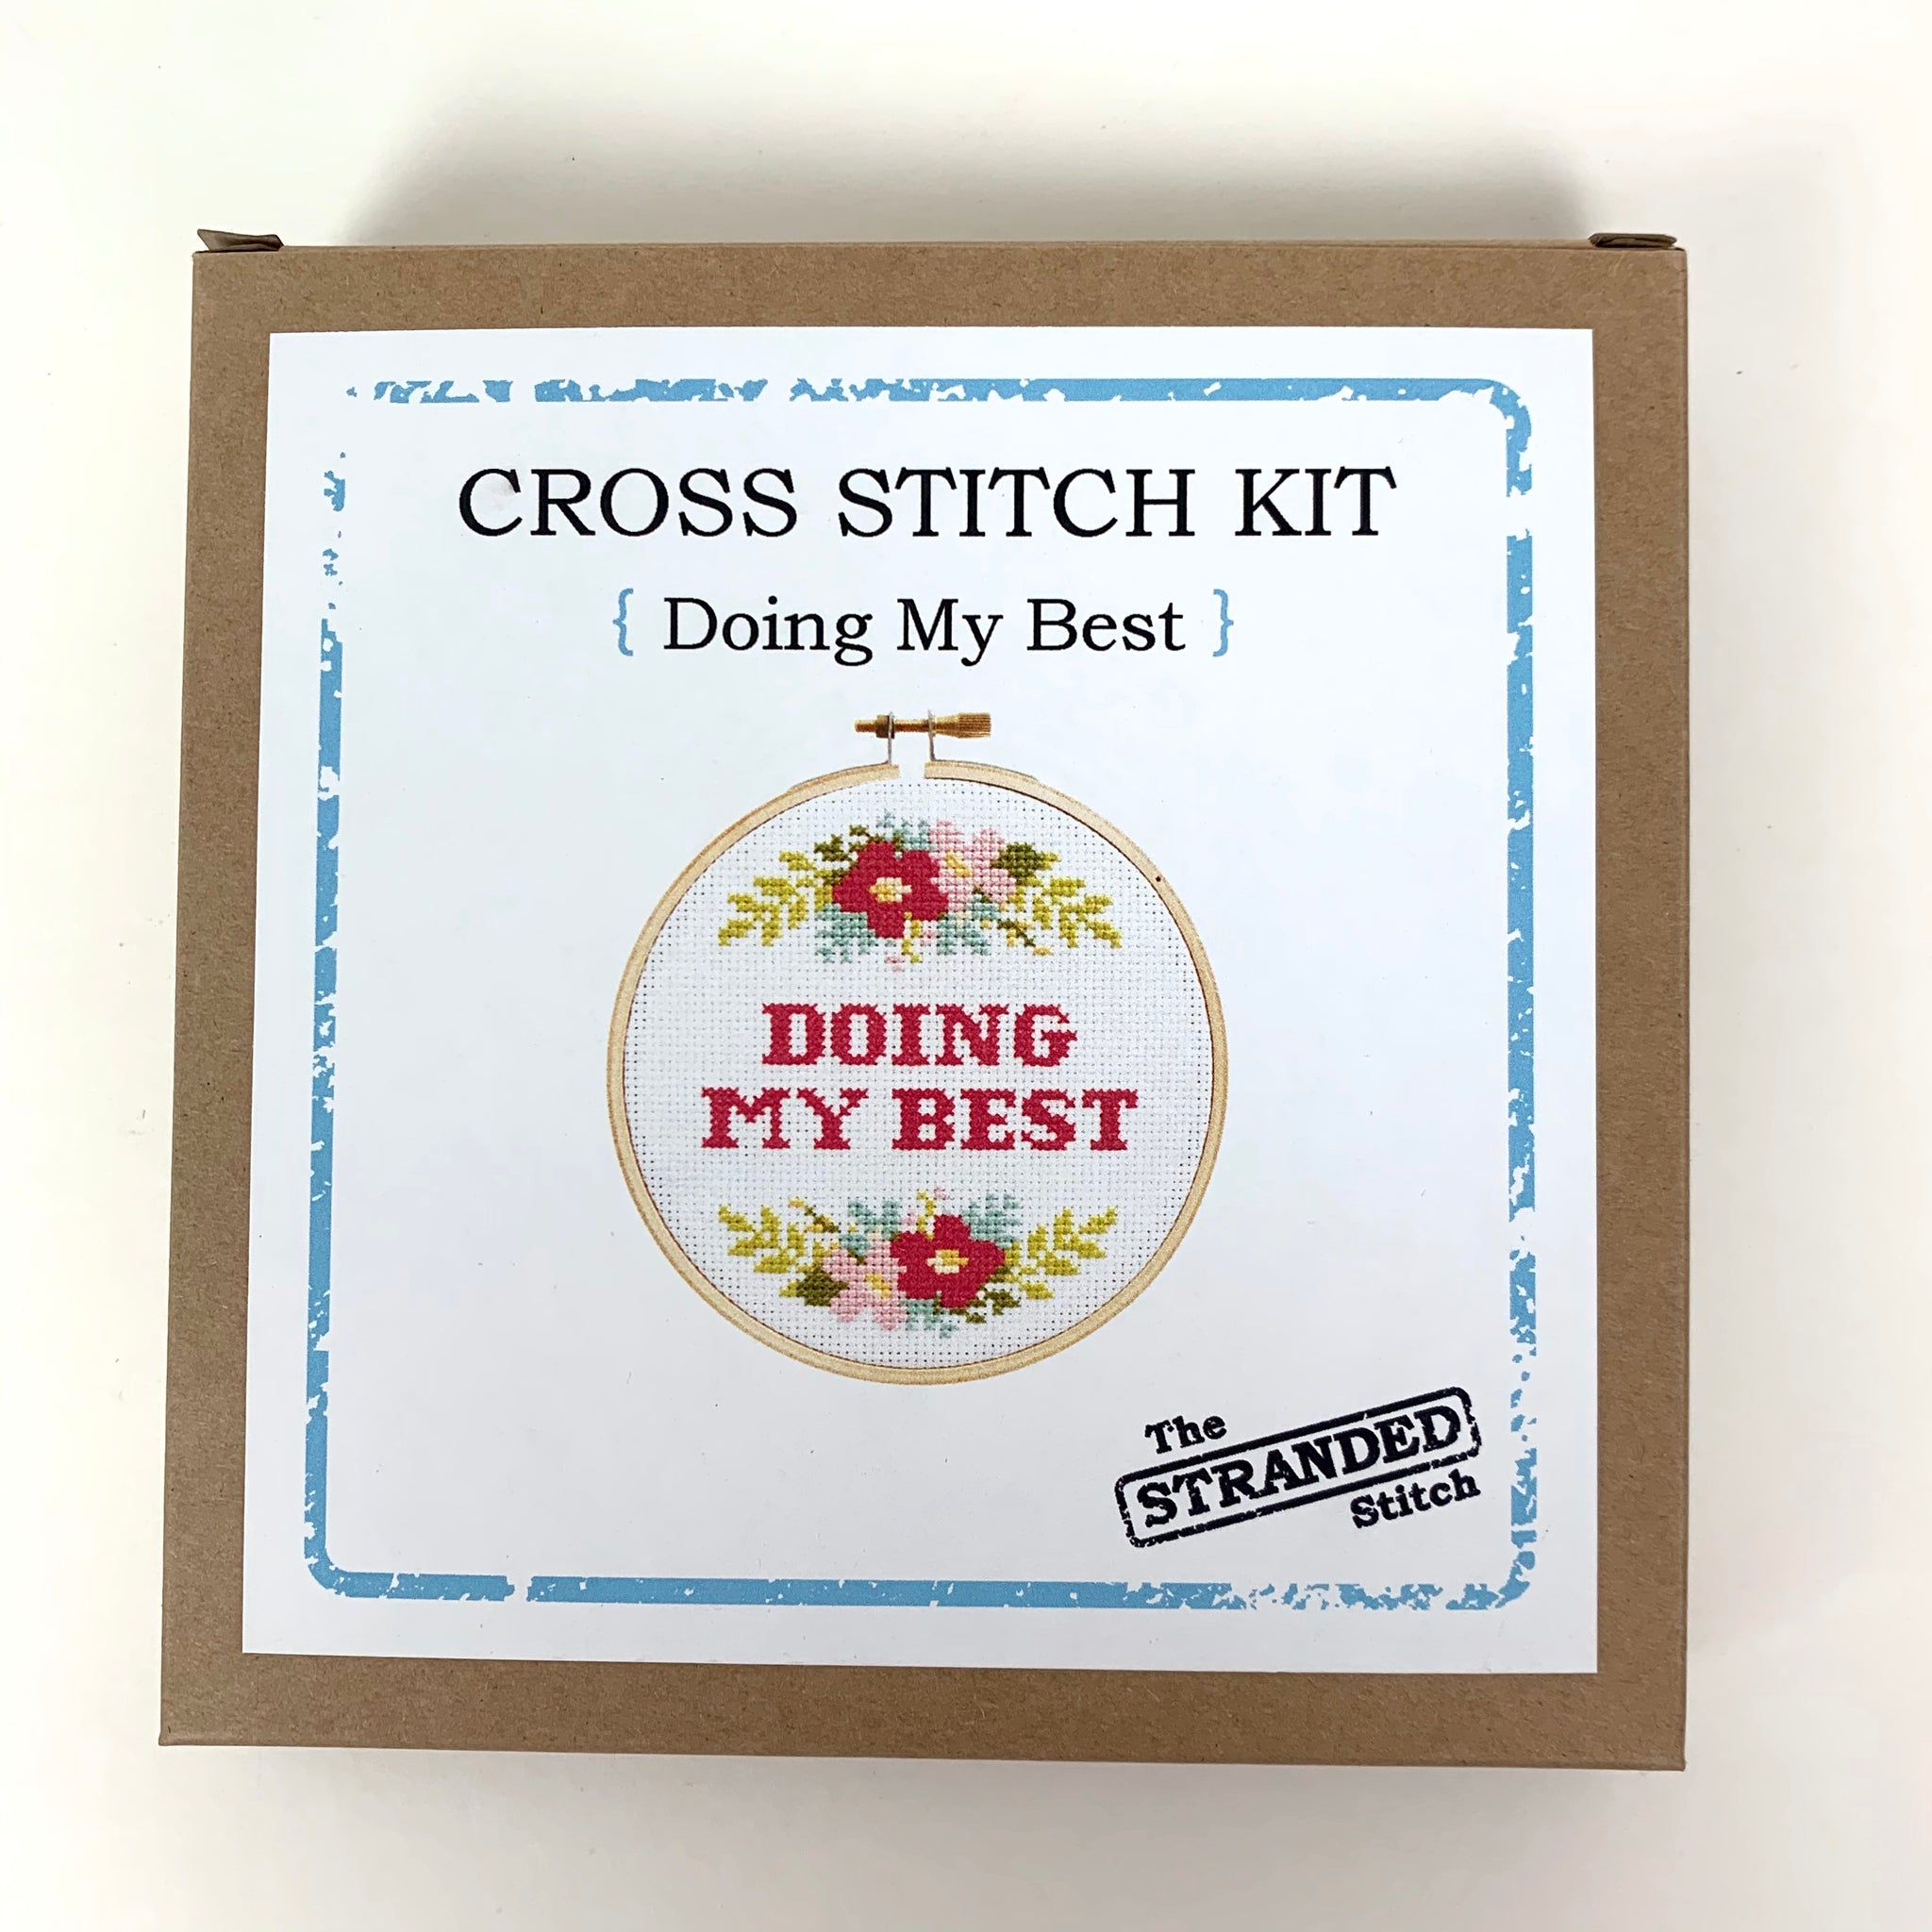 Copy of Stranded Stitch Cross Stitch Kit Doing My Best